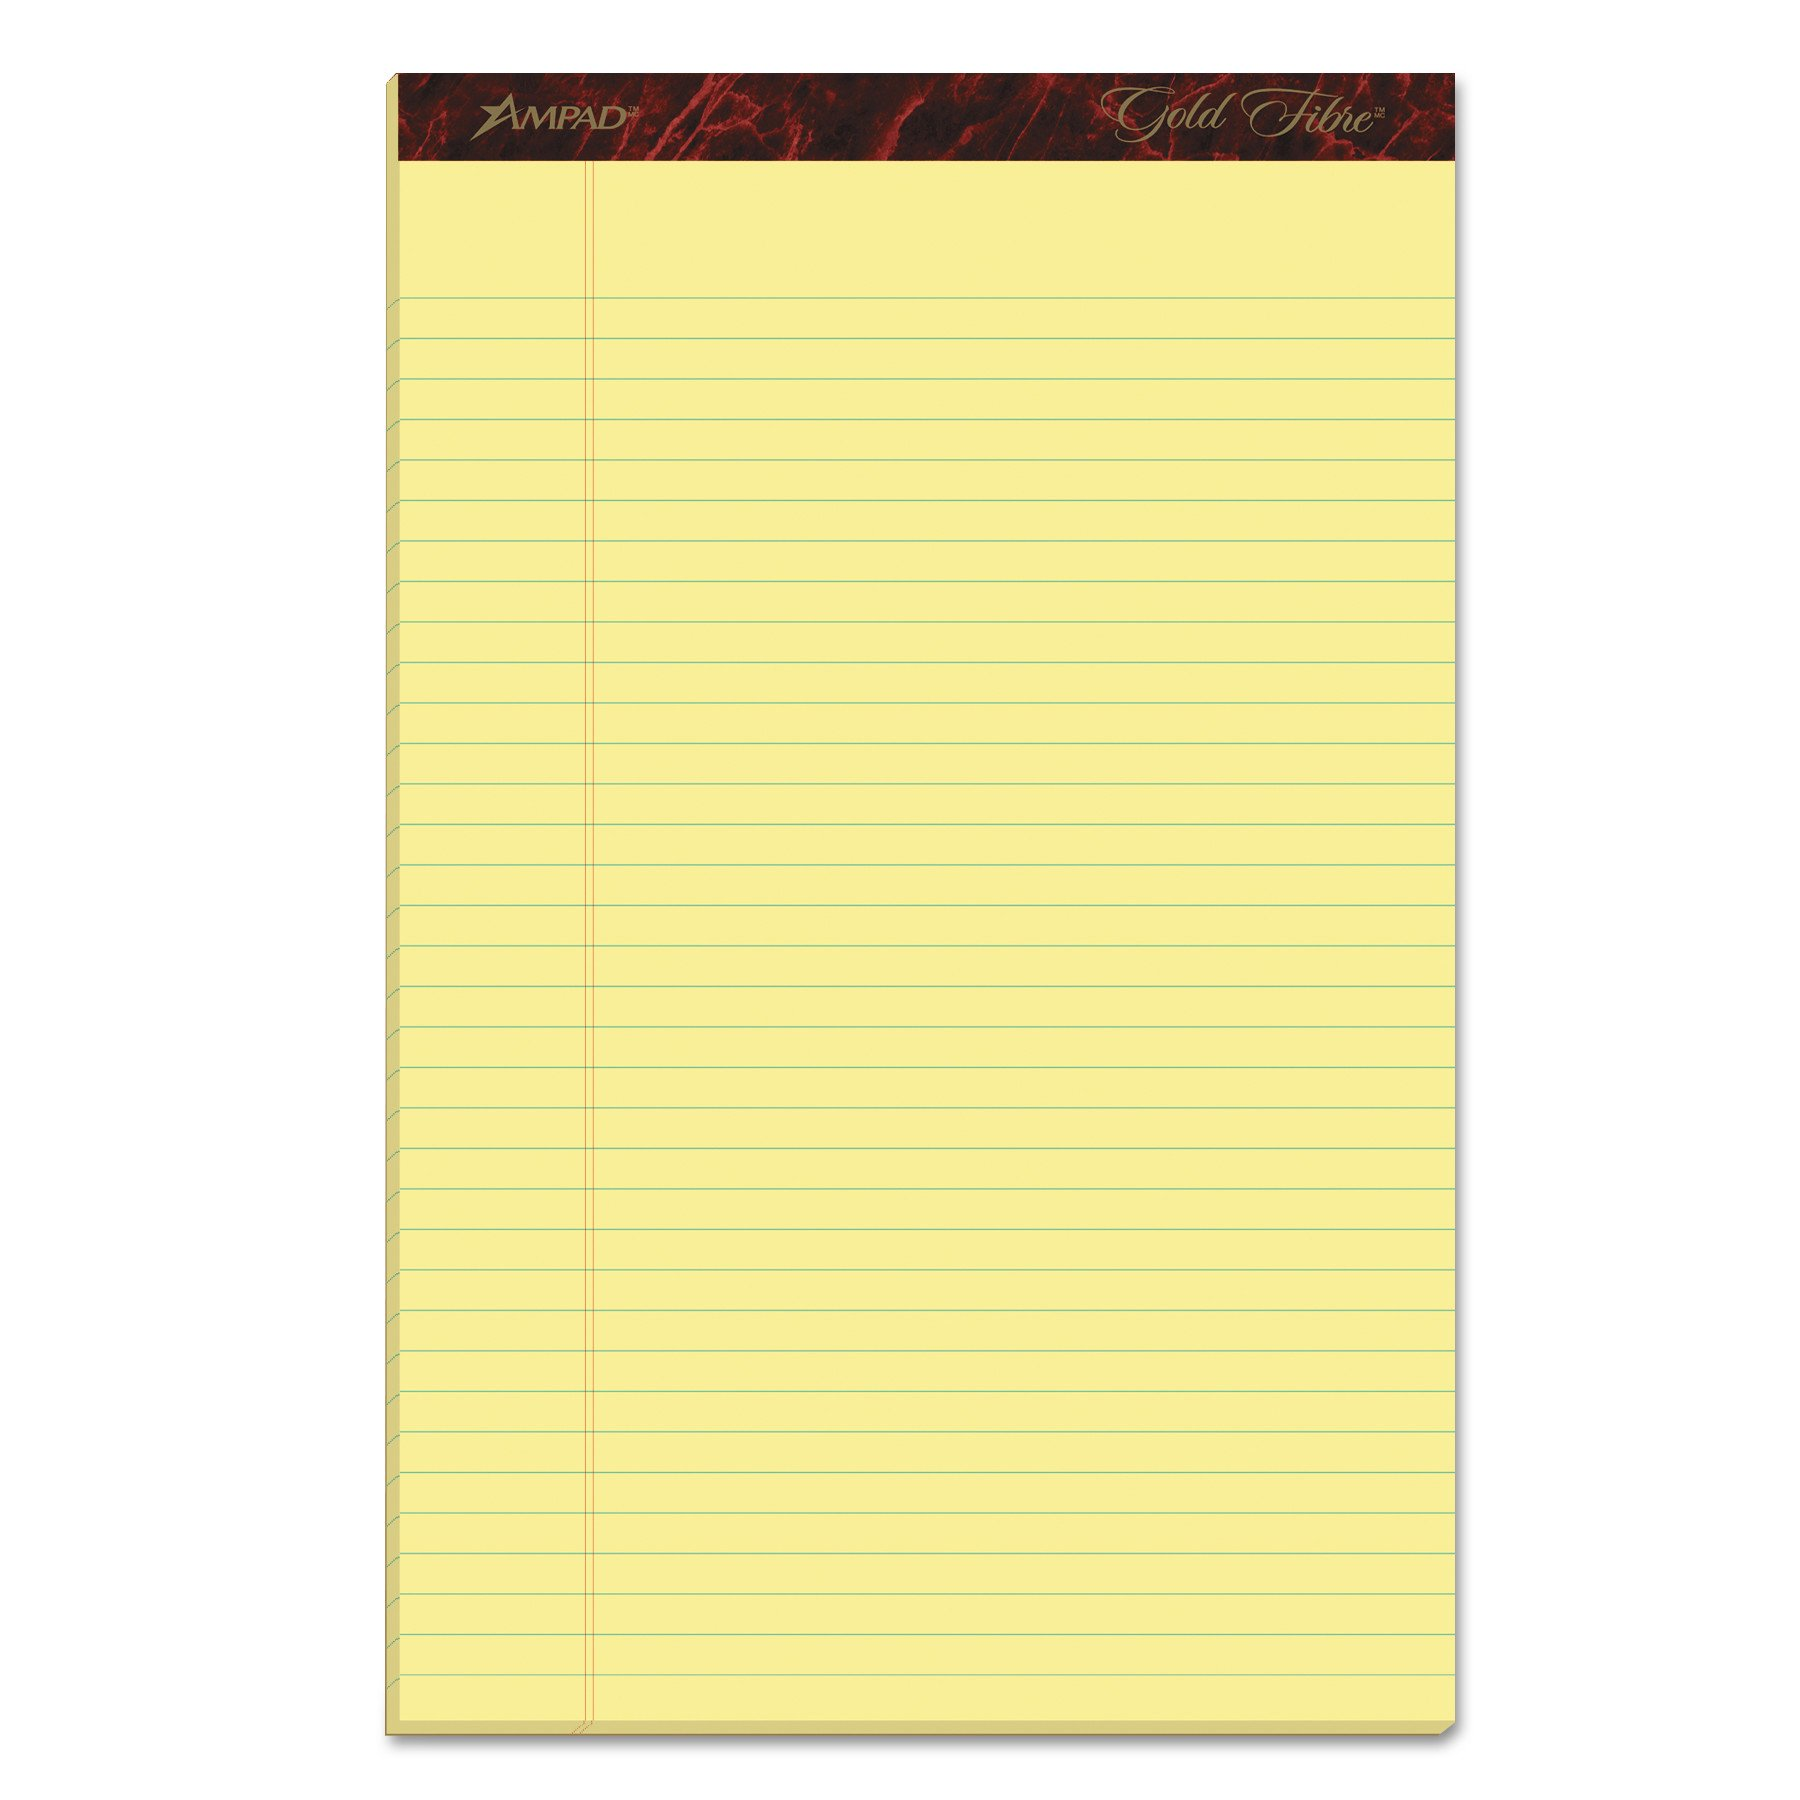 Ampad Gold Fibre Writing Pads, 8-1/2'' x 14'', Legal Rule, Canary Paper, 50 Sheets, 12 Pack (20-030R)